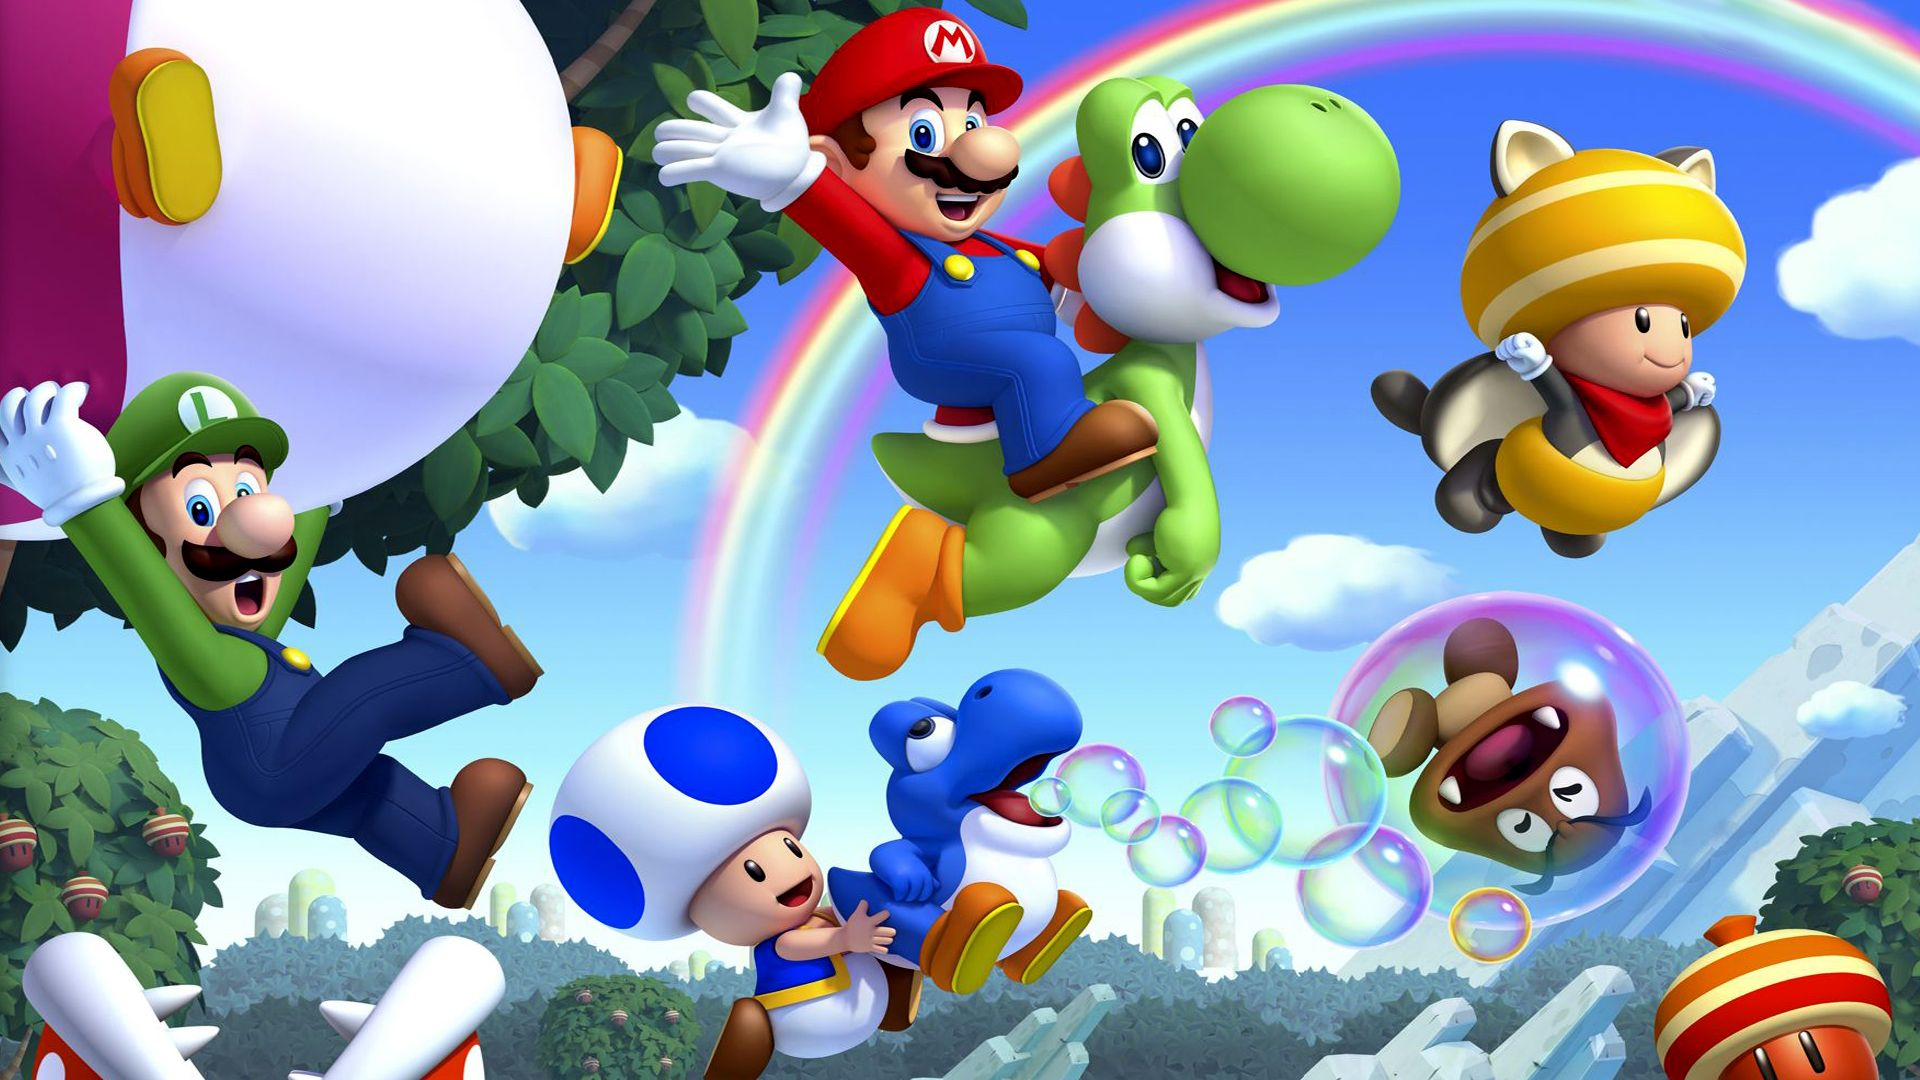 background fondo mario bros png